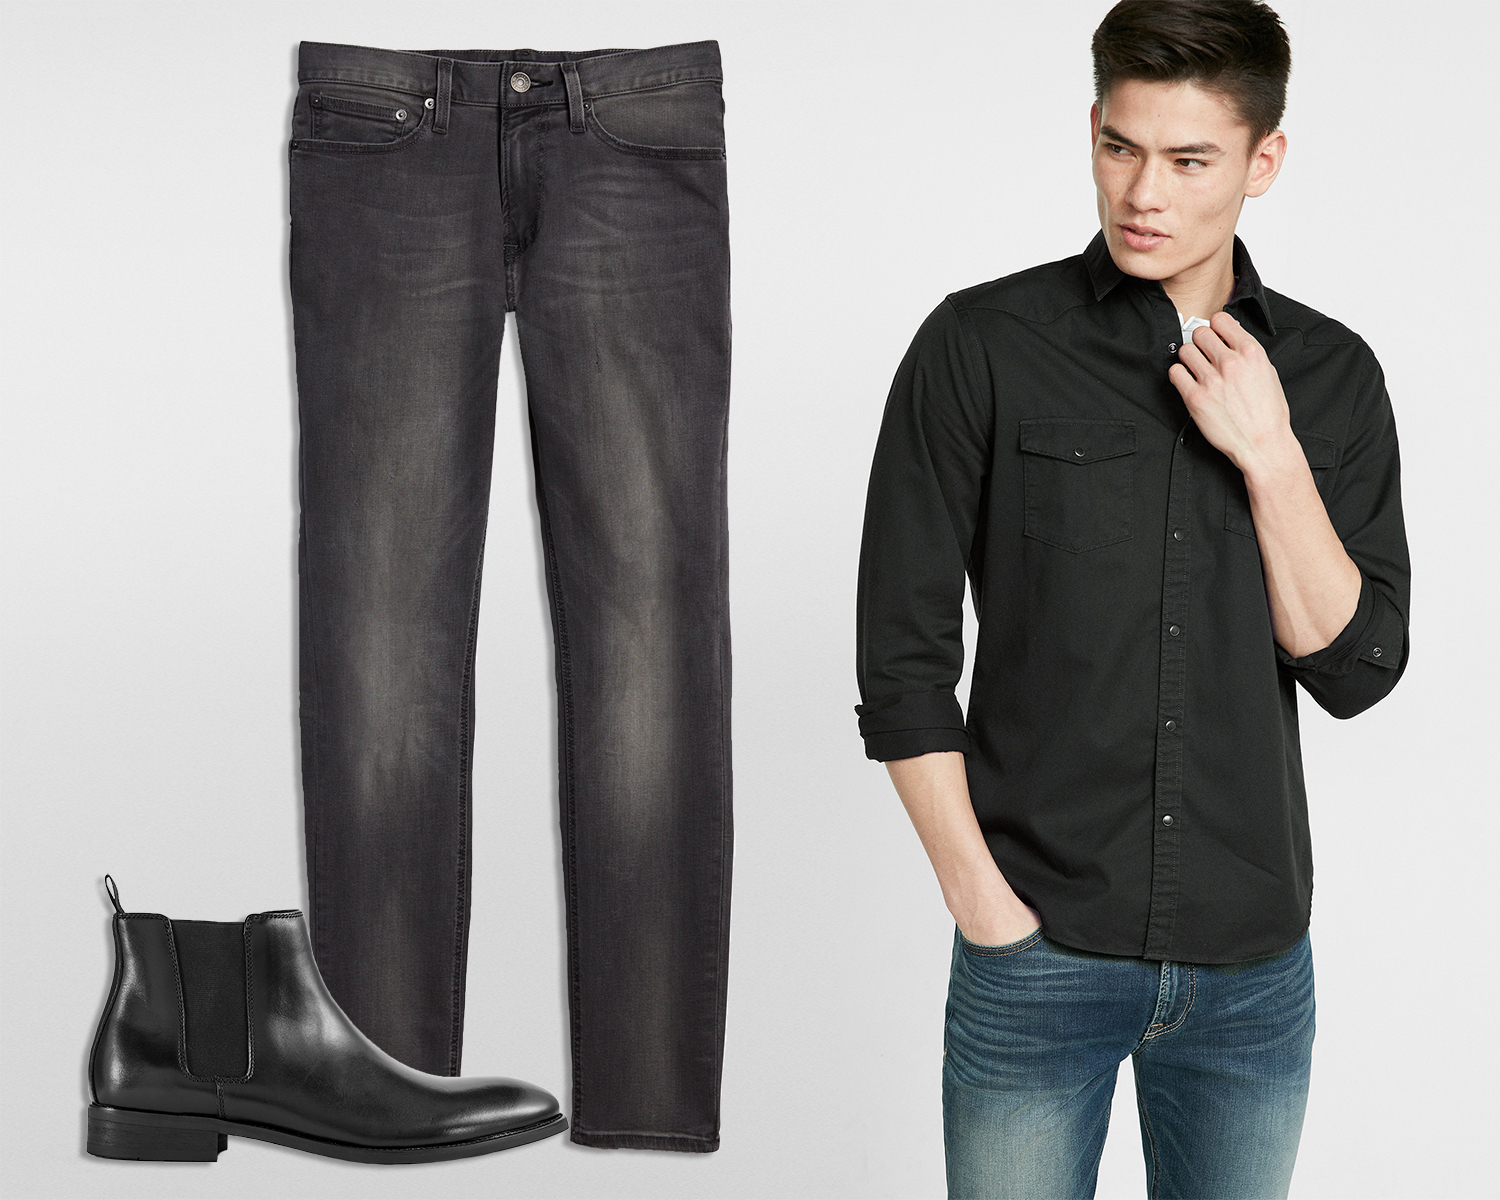 mens-twill-western-shirt-black-tough-stretch-jeans-leather-chelsea-boots